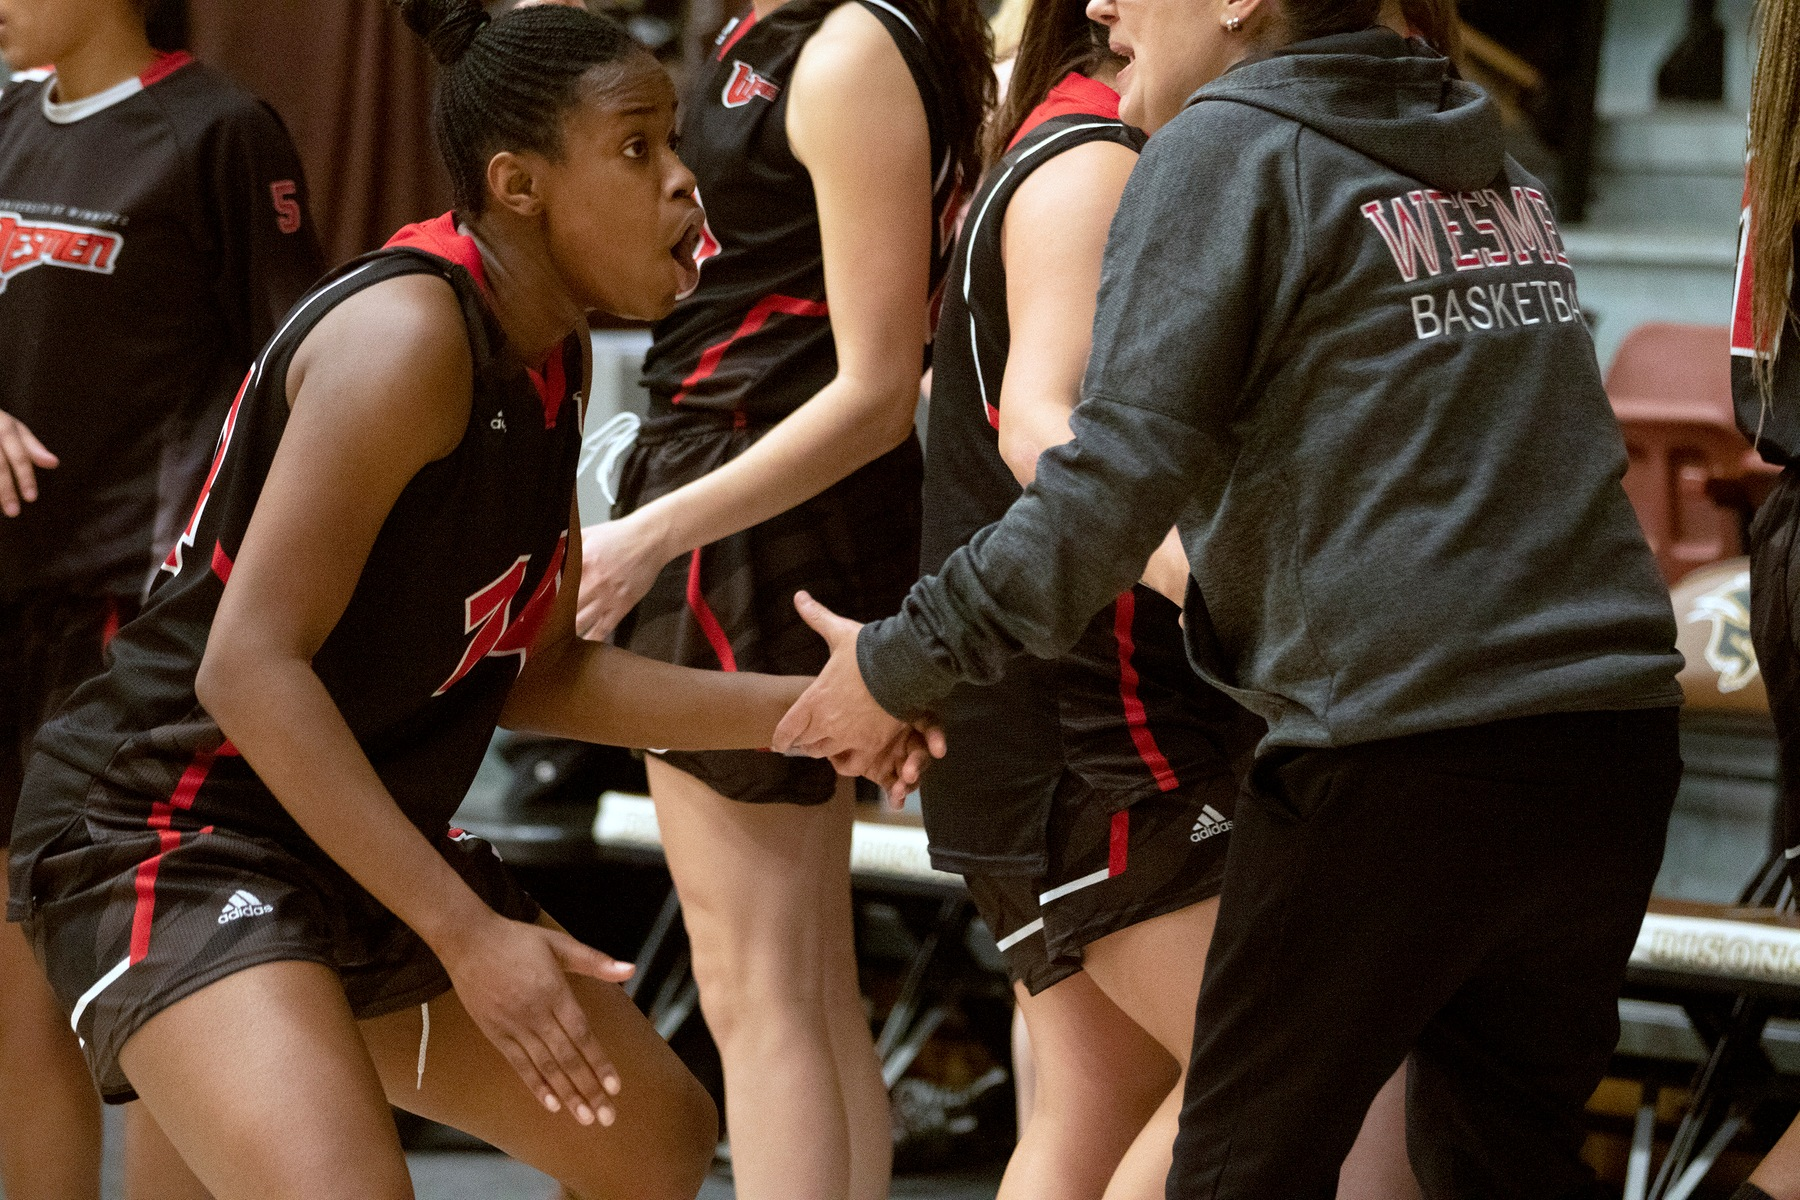 Deb Nkiasi celebrates on the sideline after the Wesmen women's basketball team defeated the Manitoba Bisons in Canada West conference action Thursday, Nov. 21, 2019 at the Investors Group Athletic Centre. (David Larkins/Wesmen Athletics)